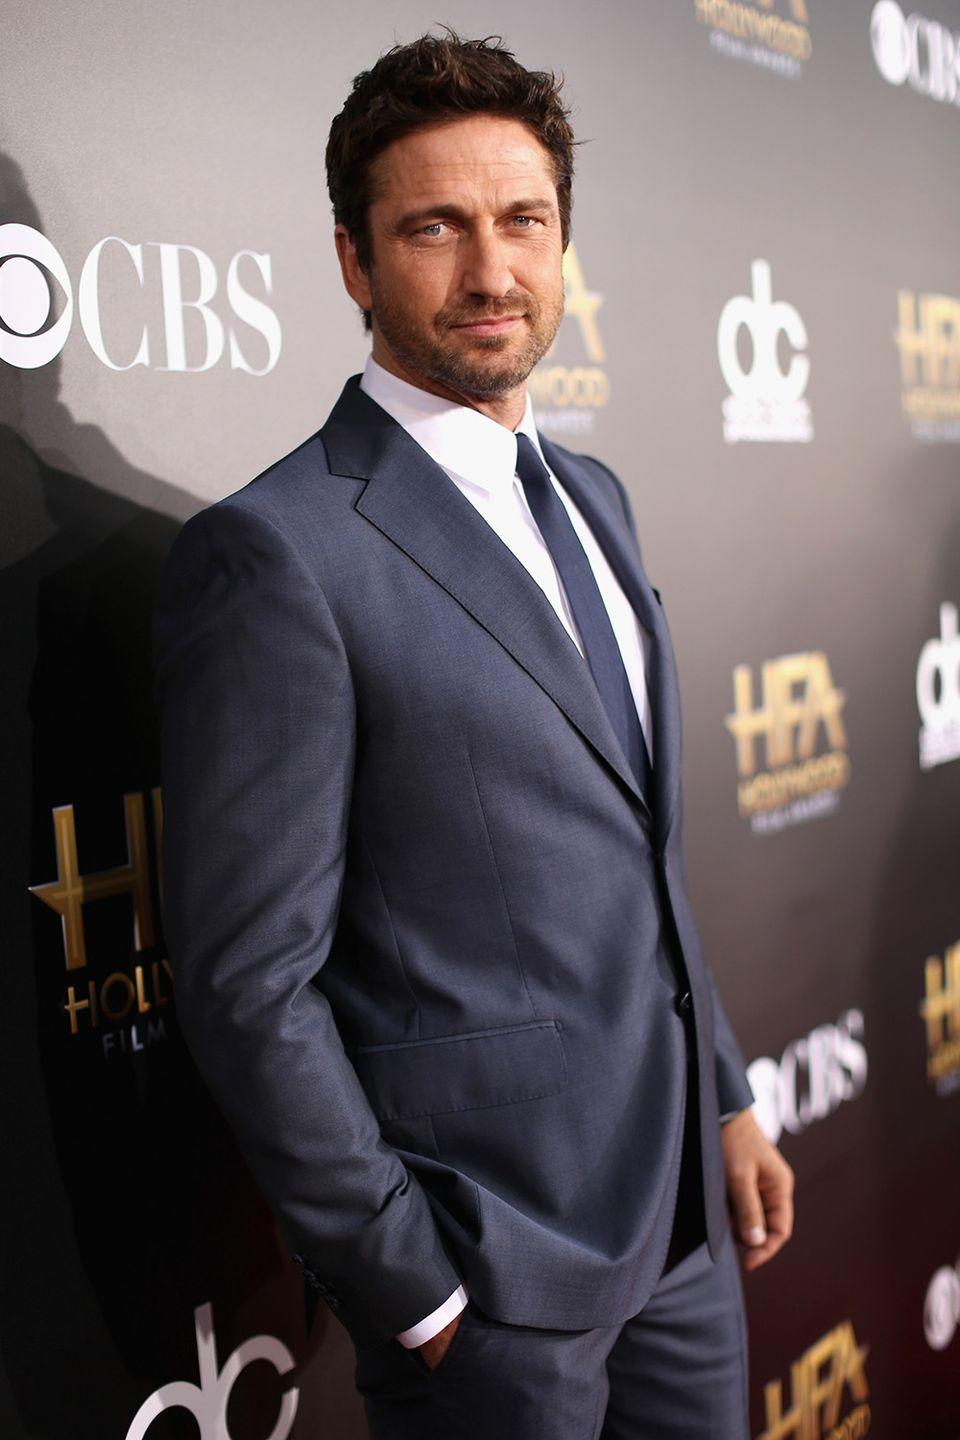 """<p>The Scottish actor struggled for years with addictions to both drugs and alcohol before seeking treatment. Now 20 years later, Butler is still embracing the sober life. </p><p>H/T: <a href=""""http://www.usmagazine.com/celebrity-news/news/gerard-butler-finally-opens-up-about-rehab-i-havent-had-a-drink-in-15-years-20121910"""" rel=""""nofollow noopener"""" target=""""_blank"""" data-ylk=""""slk:Us Weekly"""" class=""""link rapid-noclick-resp"""">Us Weekly</a></p>"""